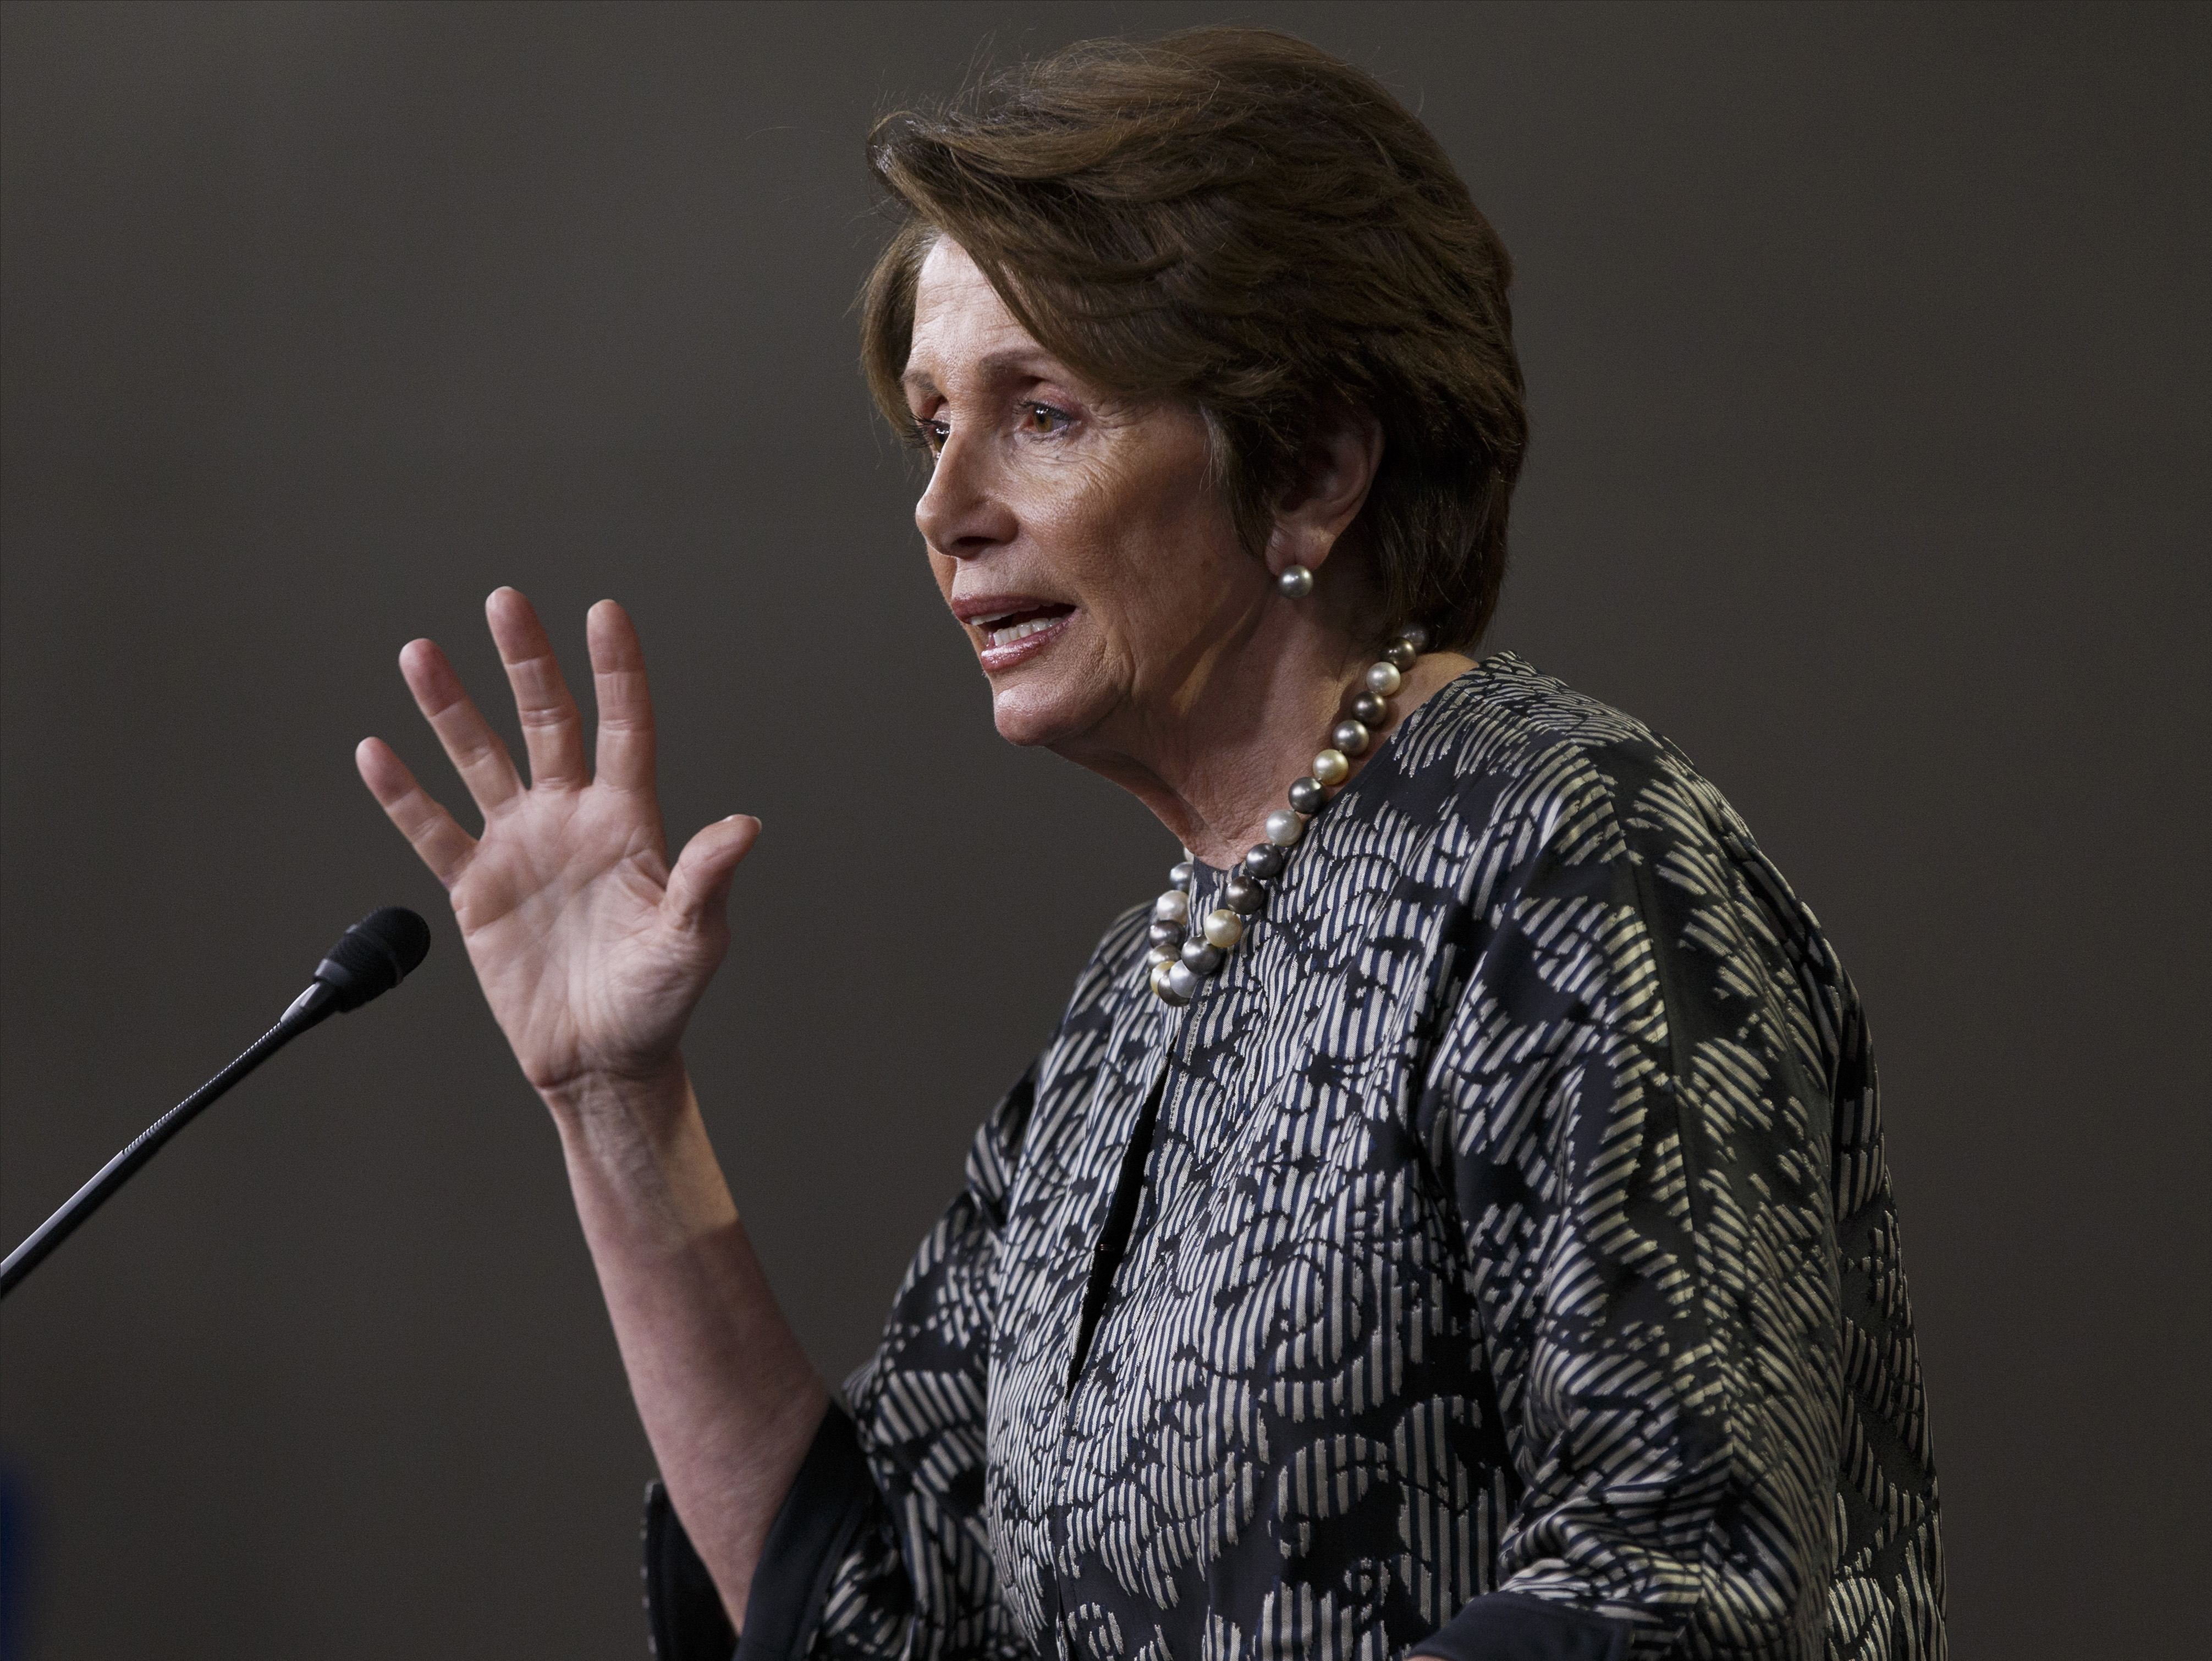 House Minority Leader Nancy Pelosi of Calif. meets with reporters on Capitol Hill in Washington, Thursday, March 13, 2014.